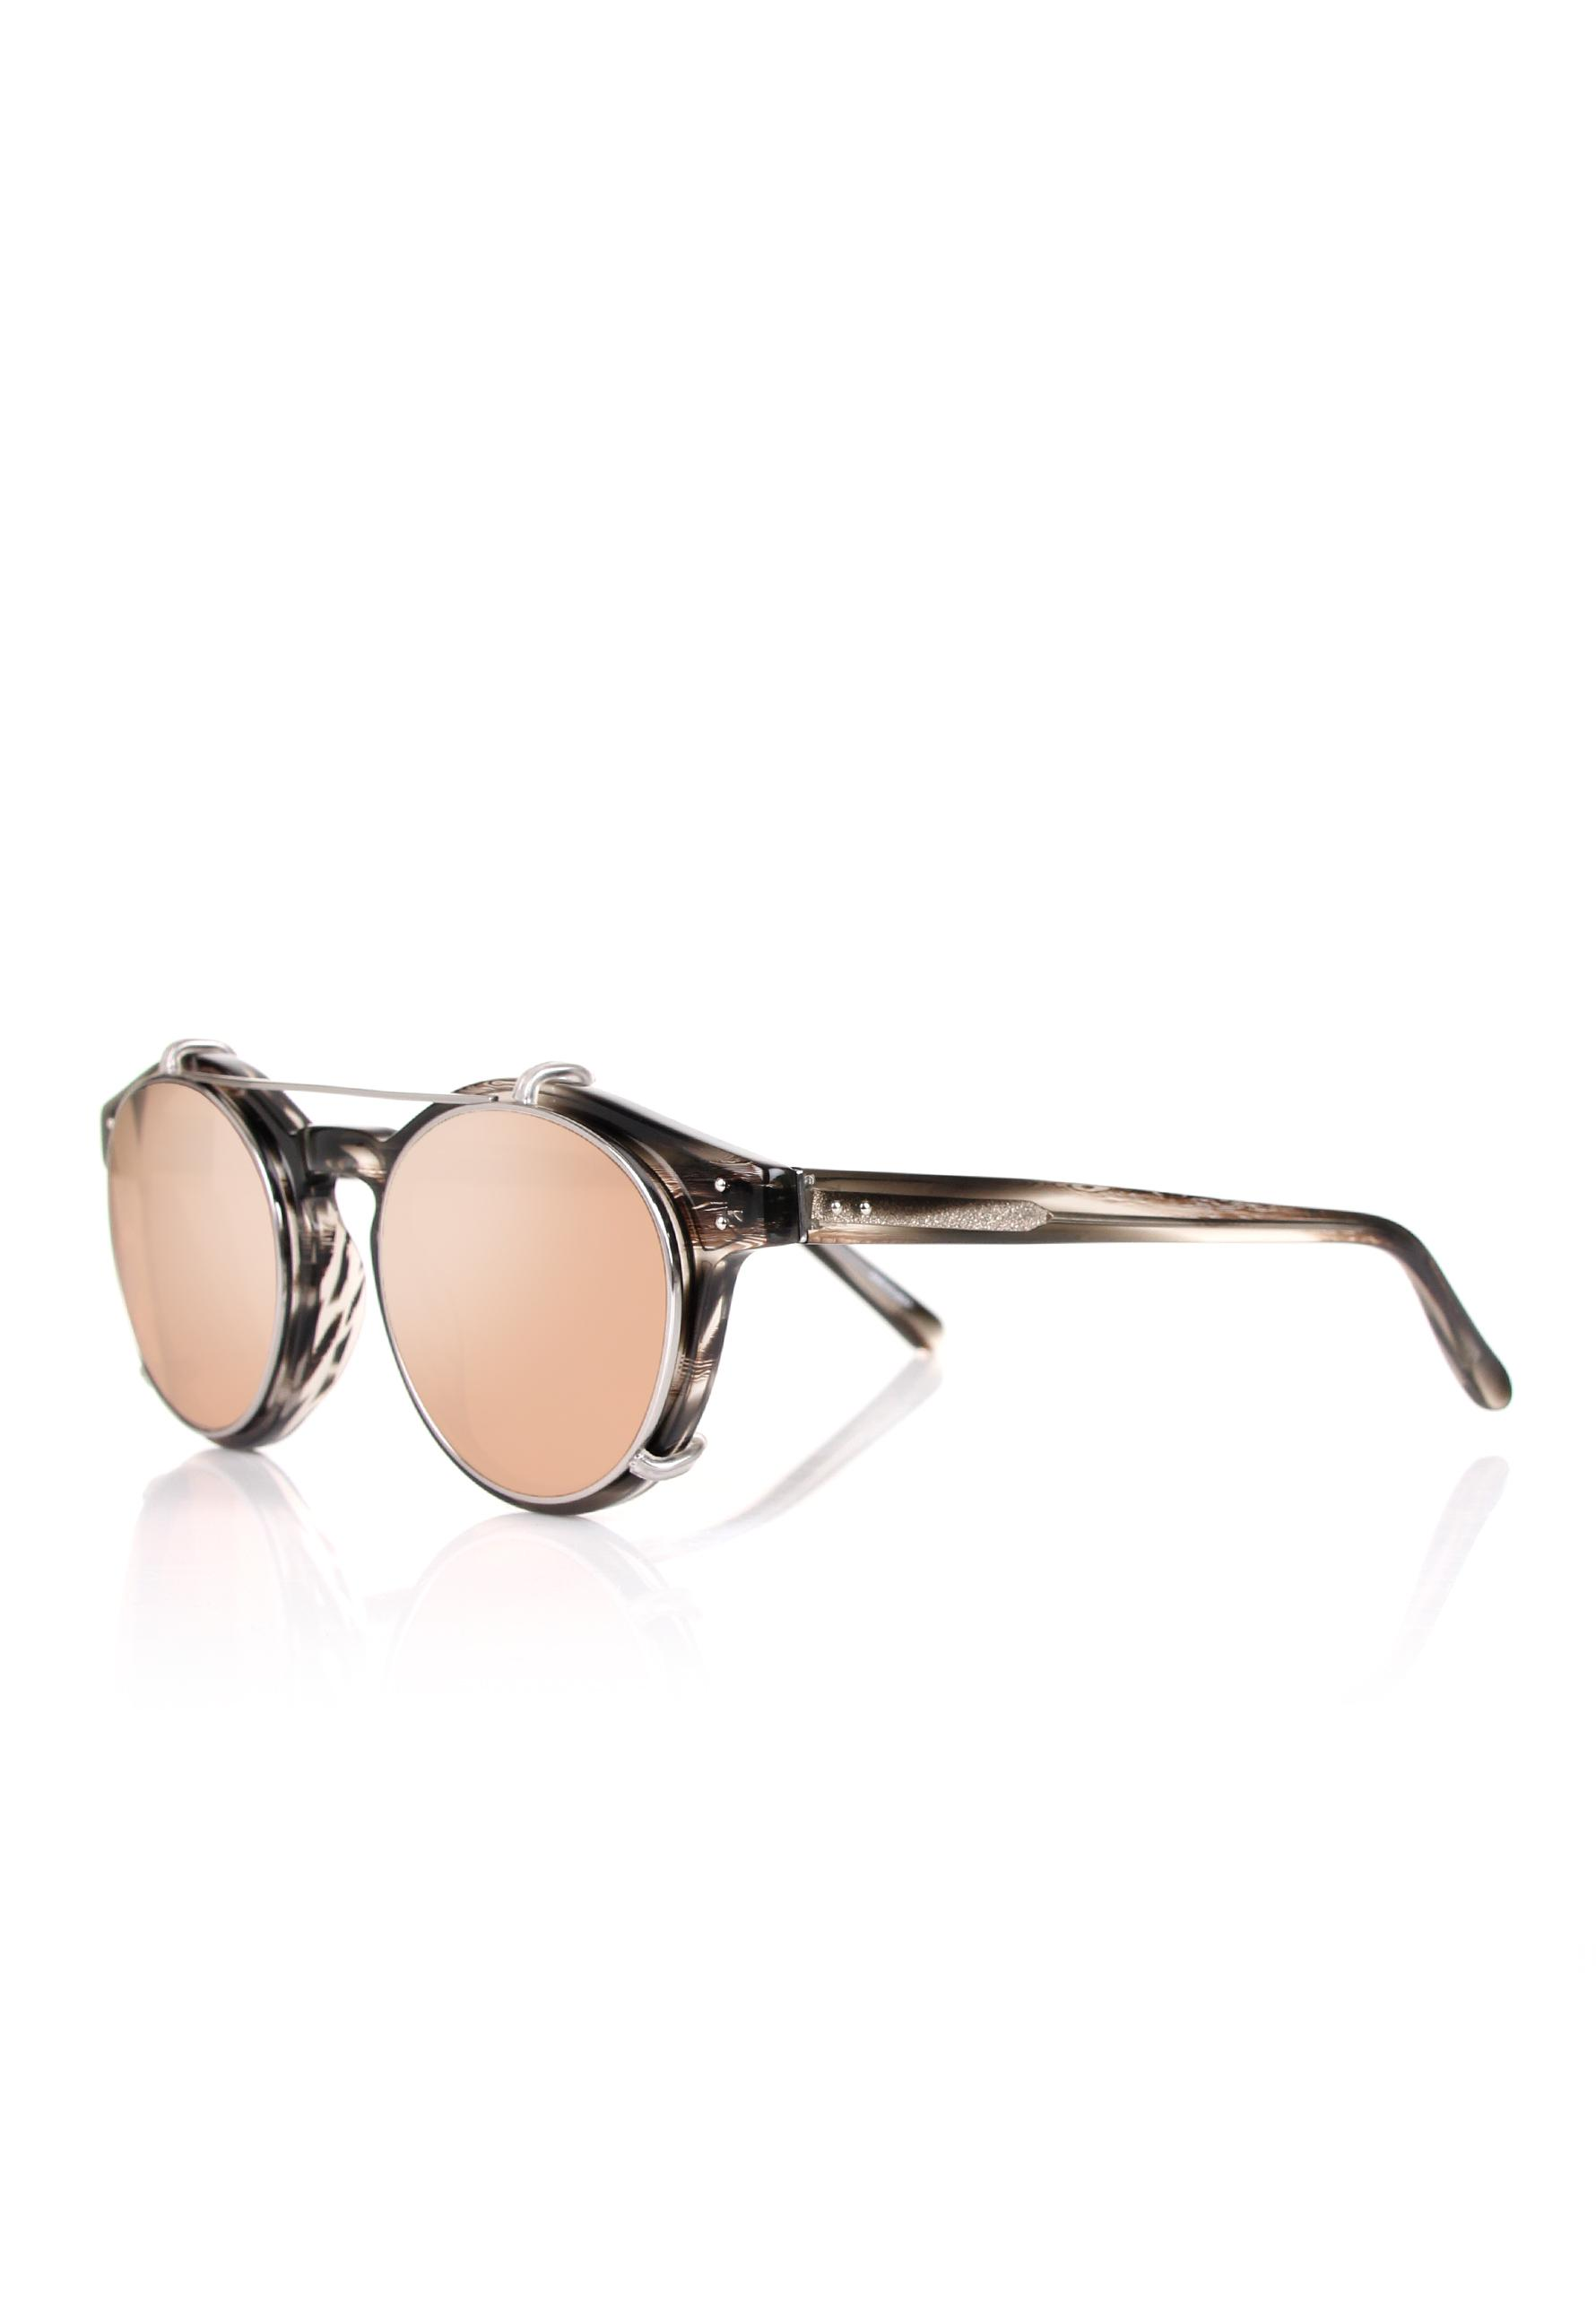 Explore Cheap Price Linda Farrow 569 clip on sunglasses Collections For Sale Discount With Paypal BpstGJy